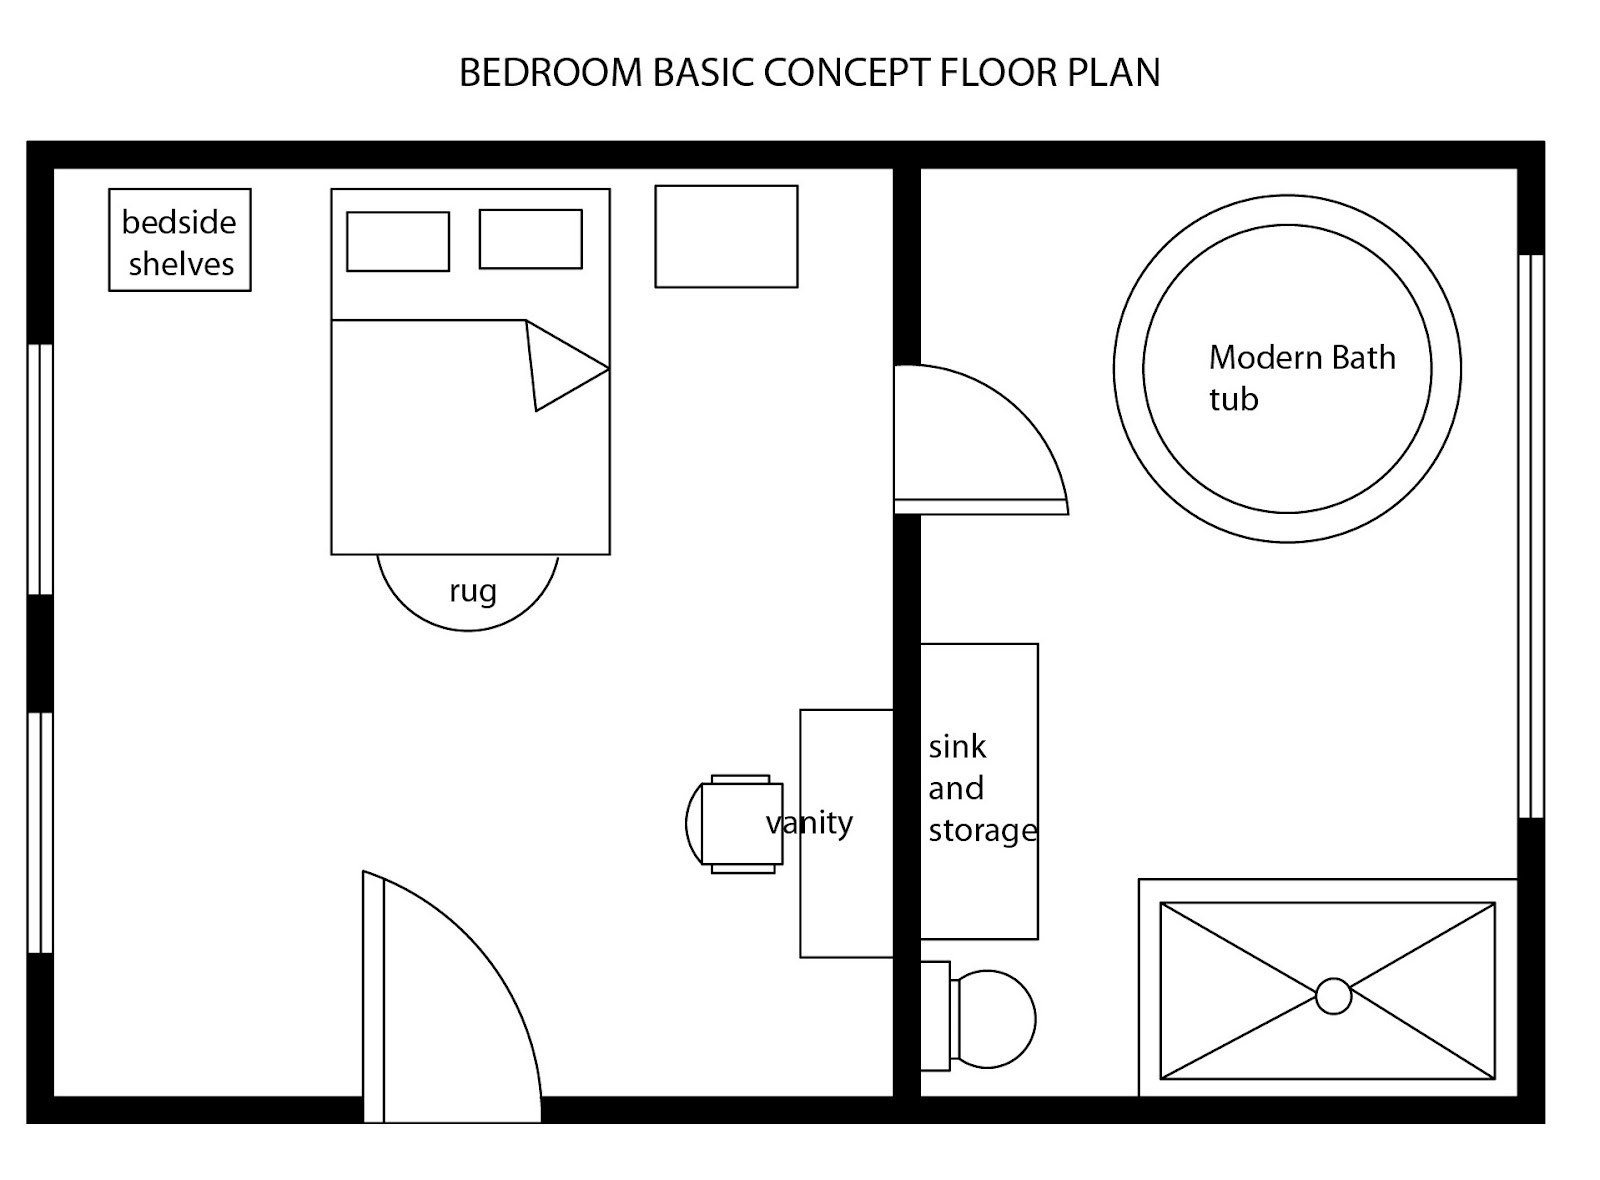 Interior design decor modern bedroom basic floor plan for 2 bedroom layout design